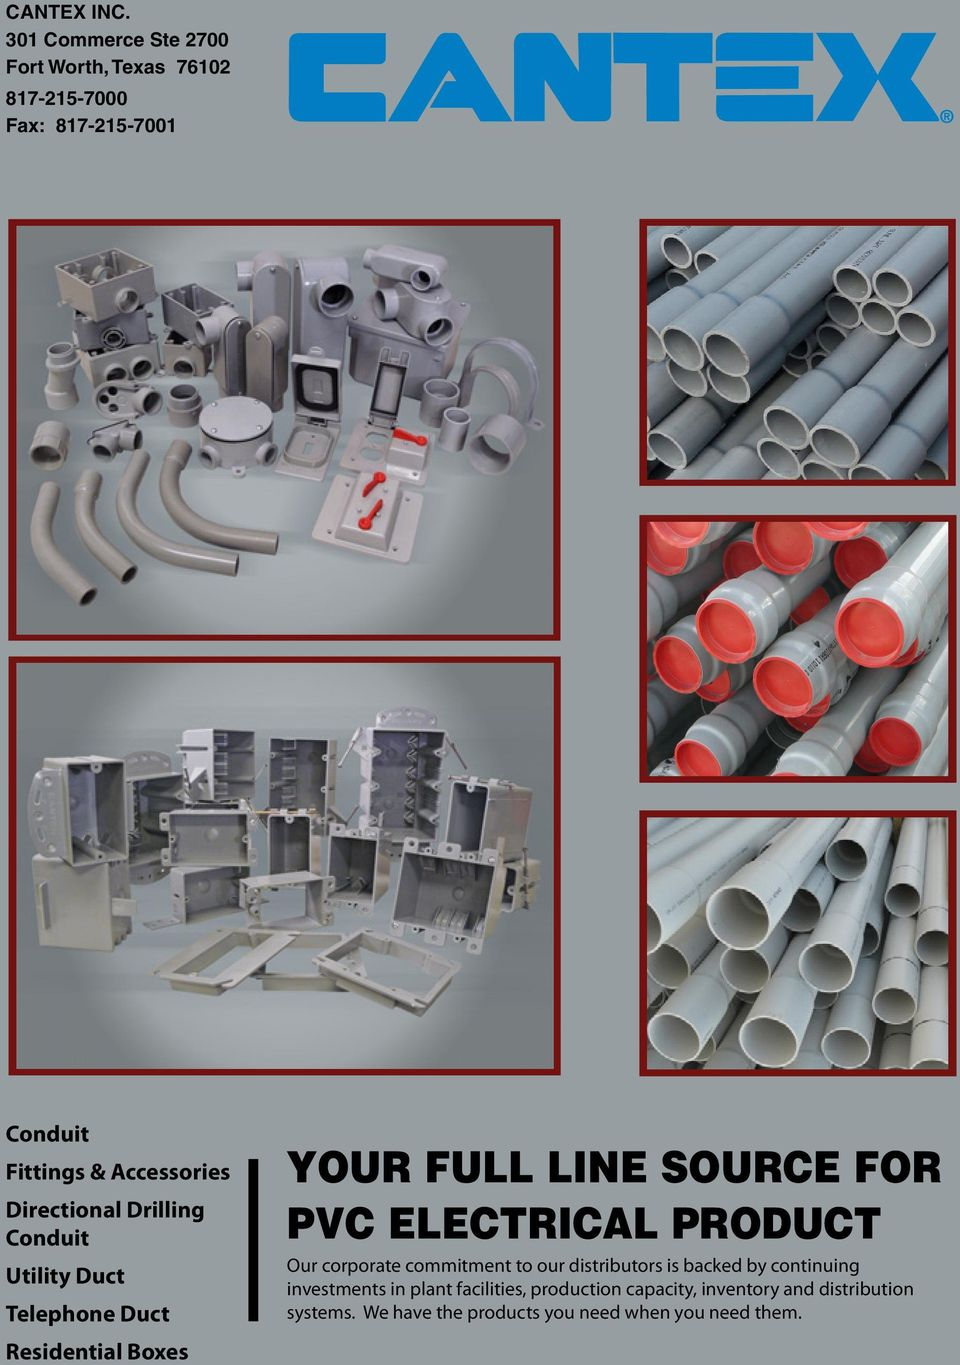 Conduit Fittings Accessories Directional Drilling Utility Electrical Pictures Duct Telephone Residential Boxes Your Full Line Source For Pvc